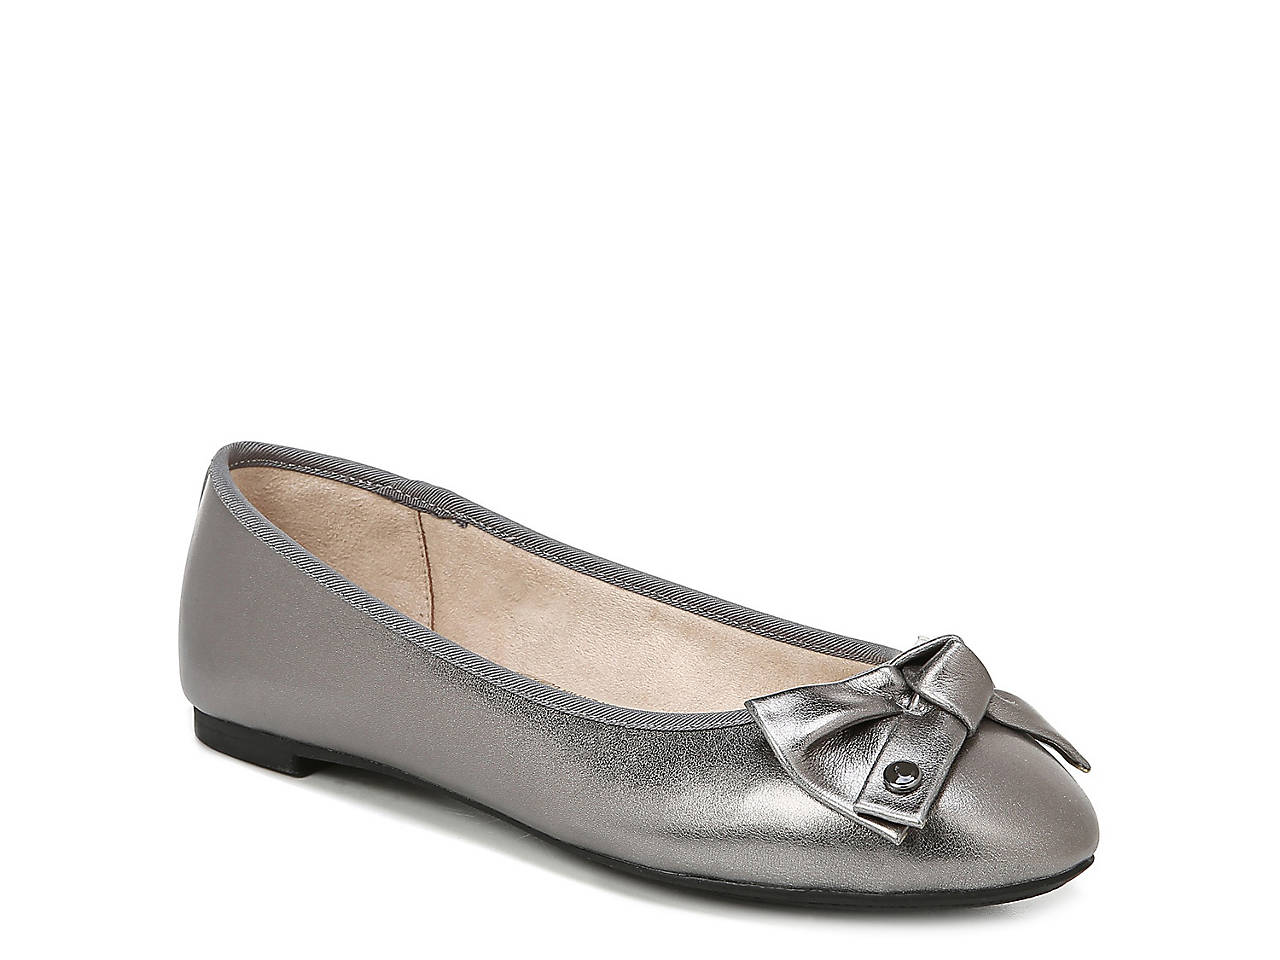 b6fbfda3594 Circus by Sam Edelman Connie Ballet Flat Women s Shoes